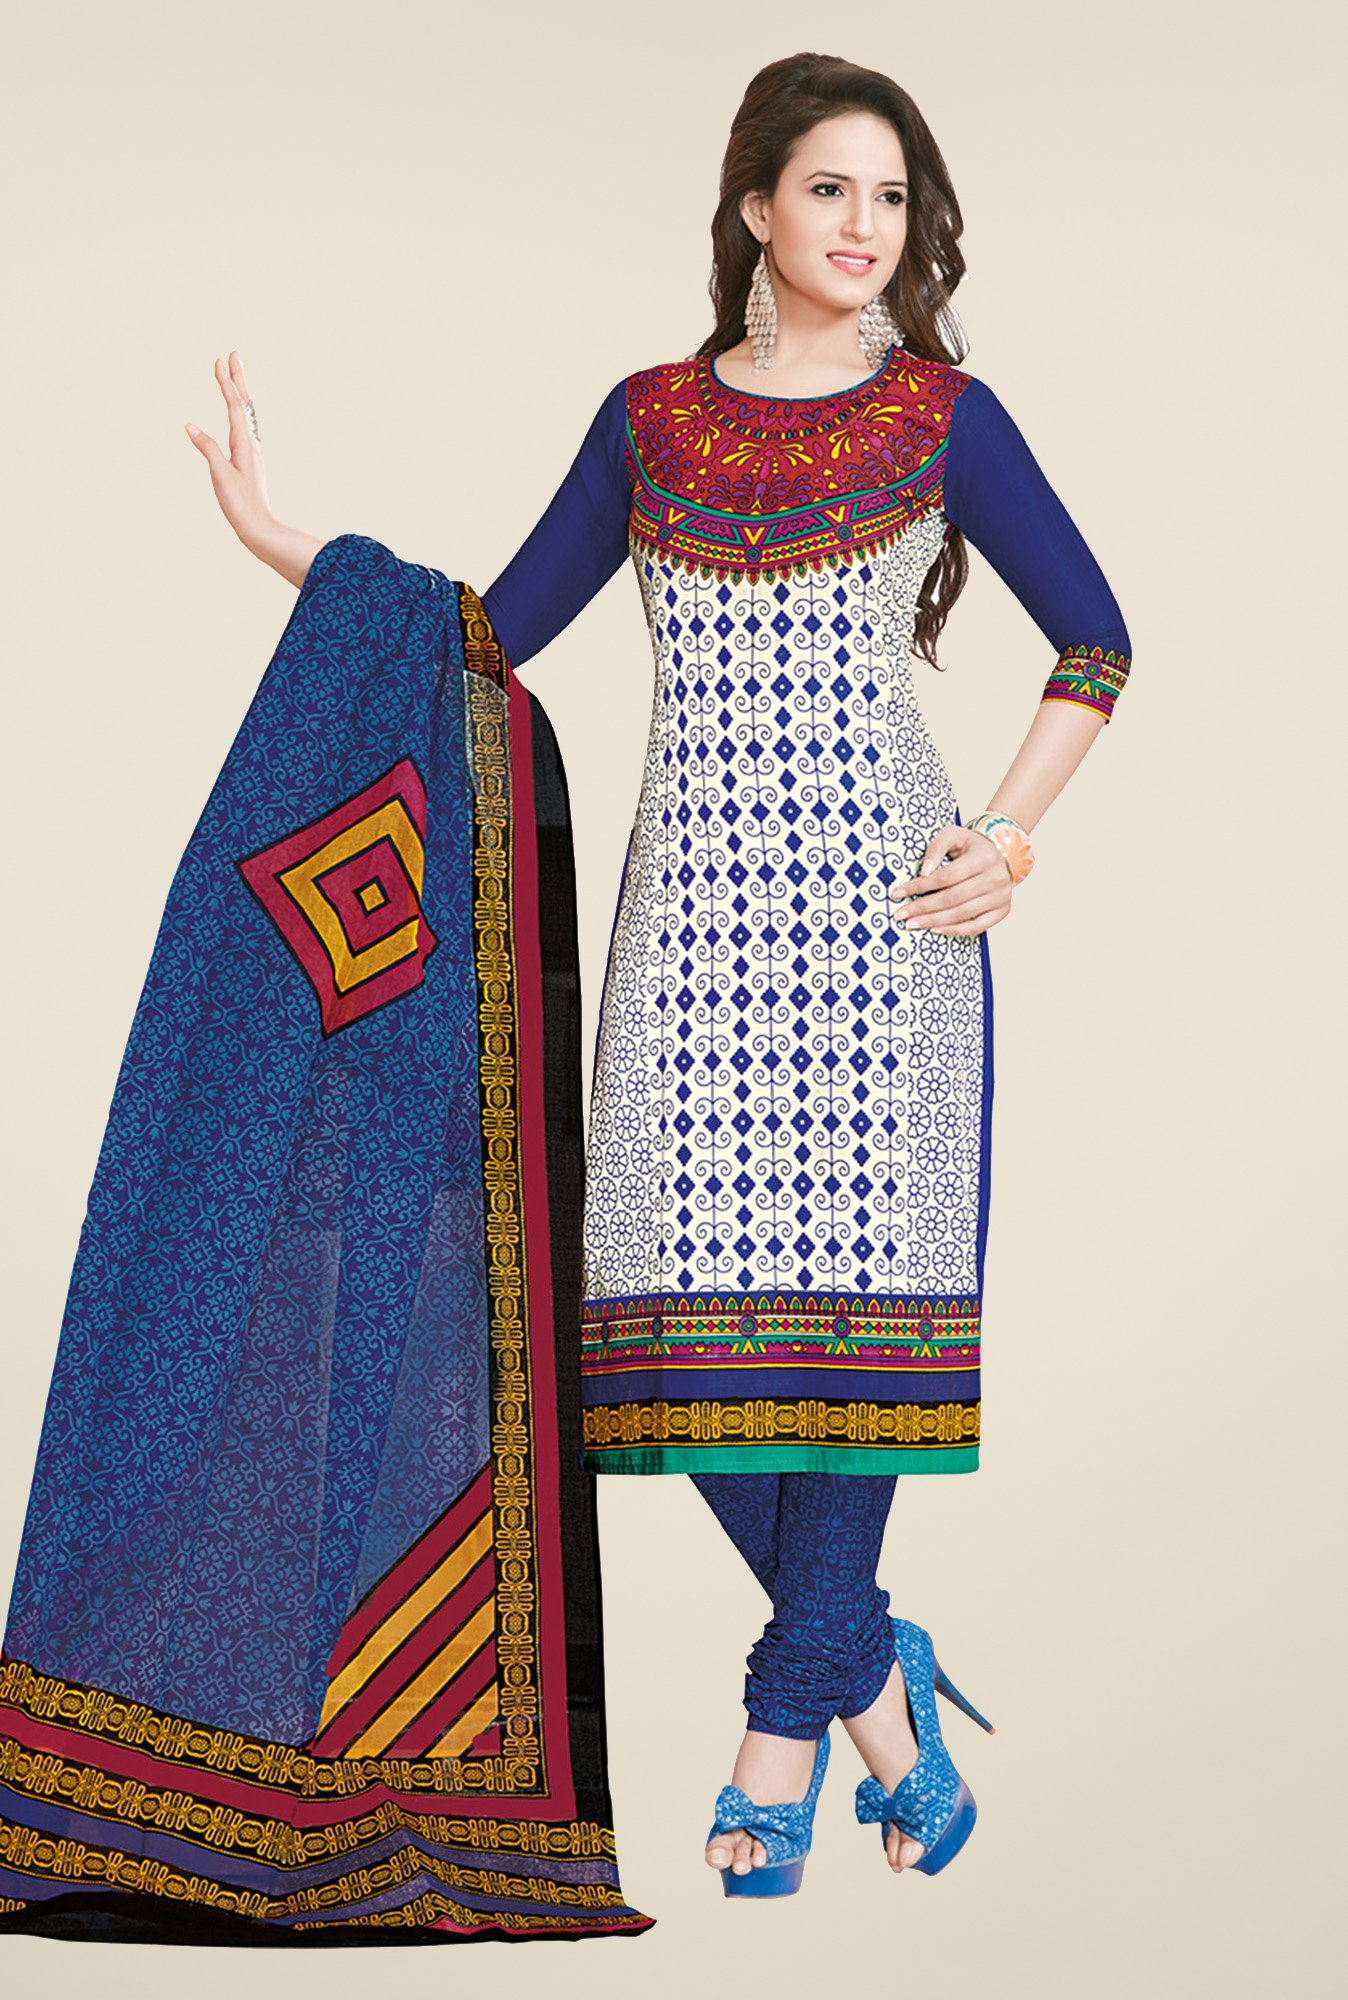 Salwar Studio Blue & White Cotton Dress Material